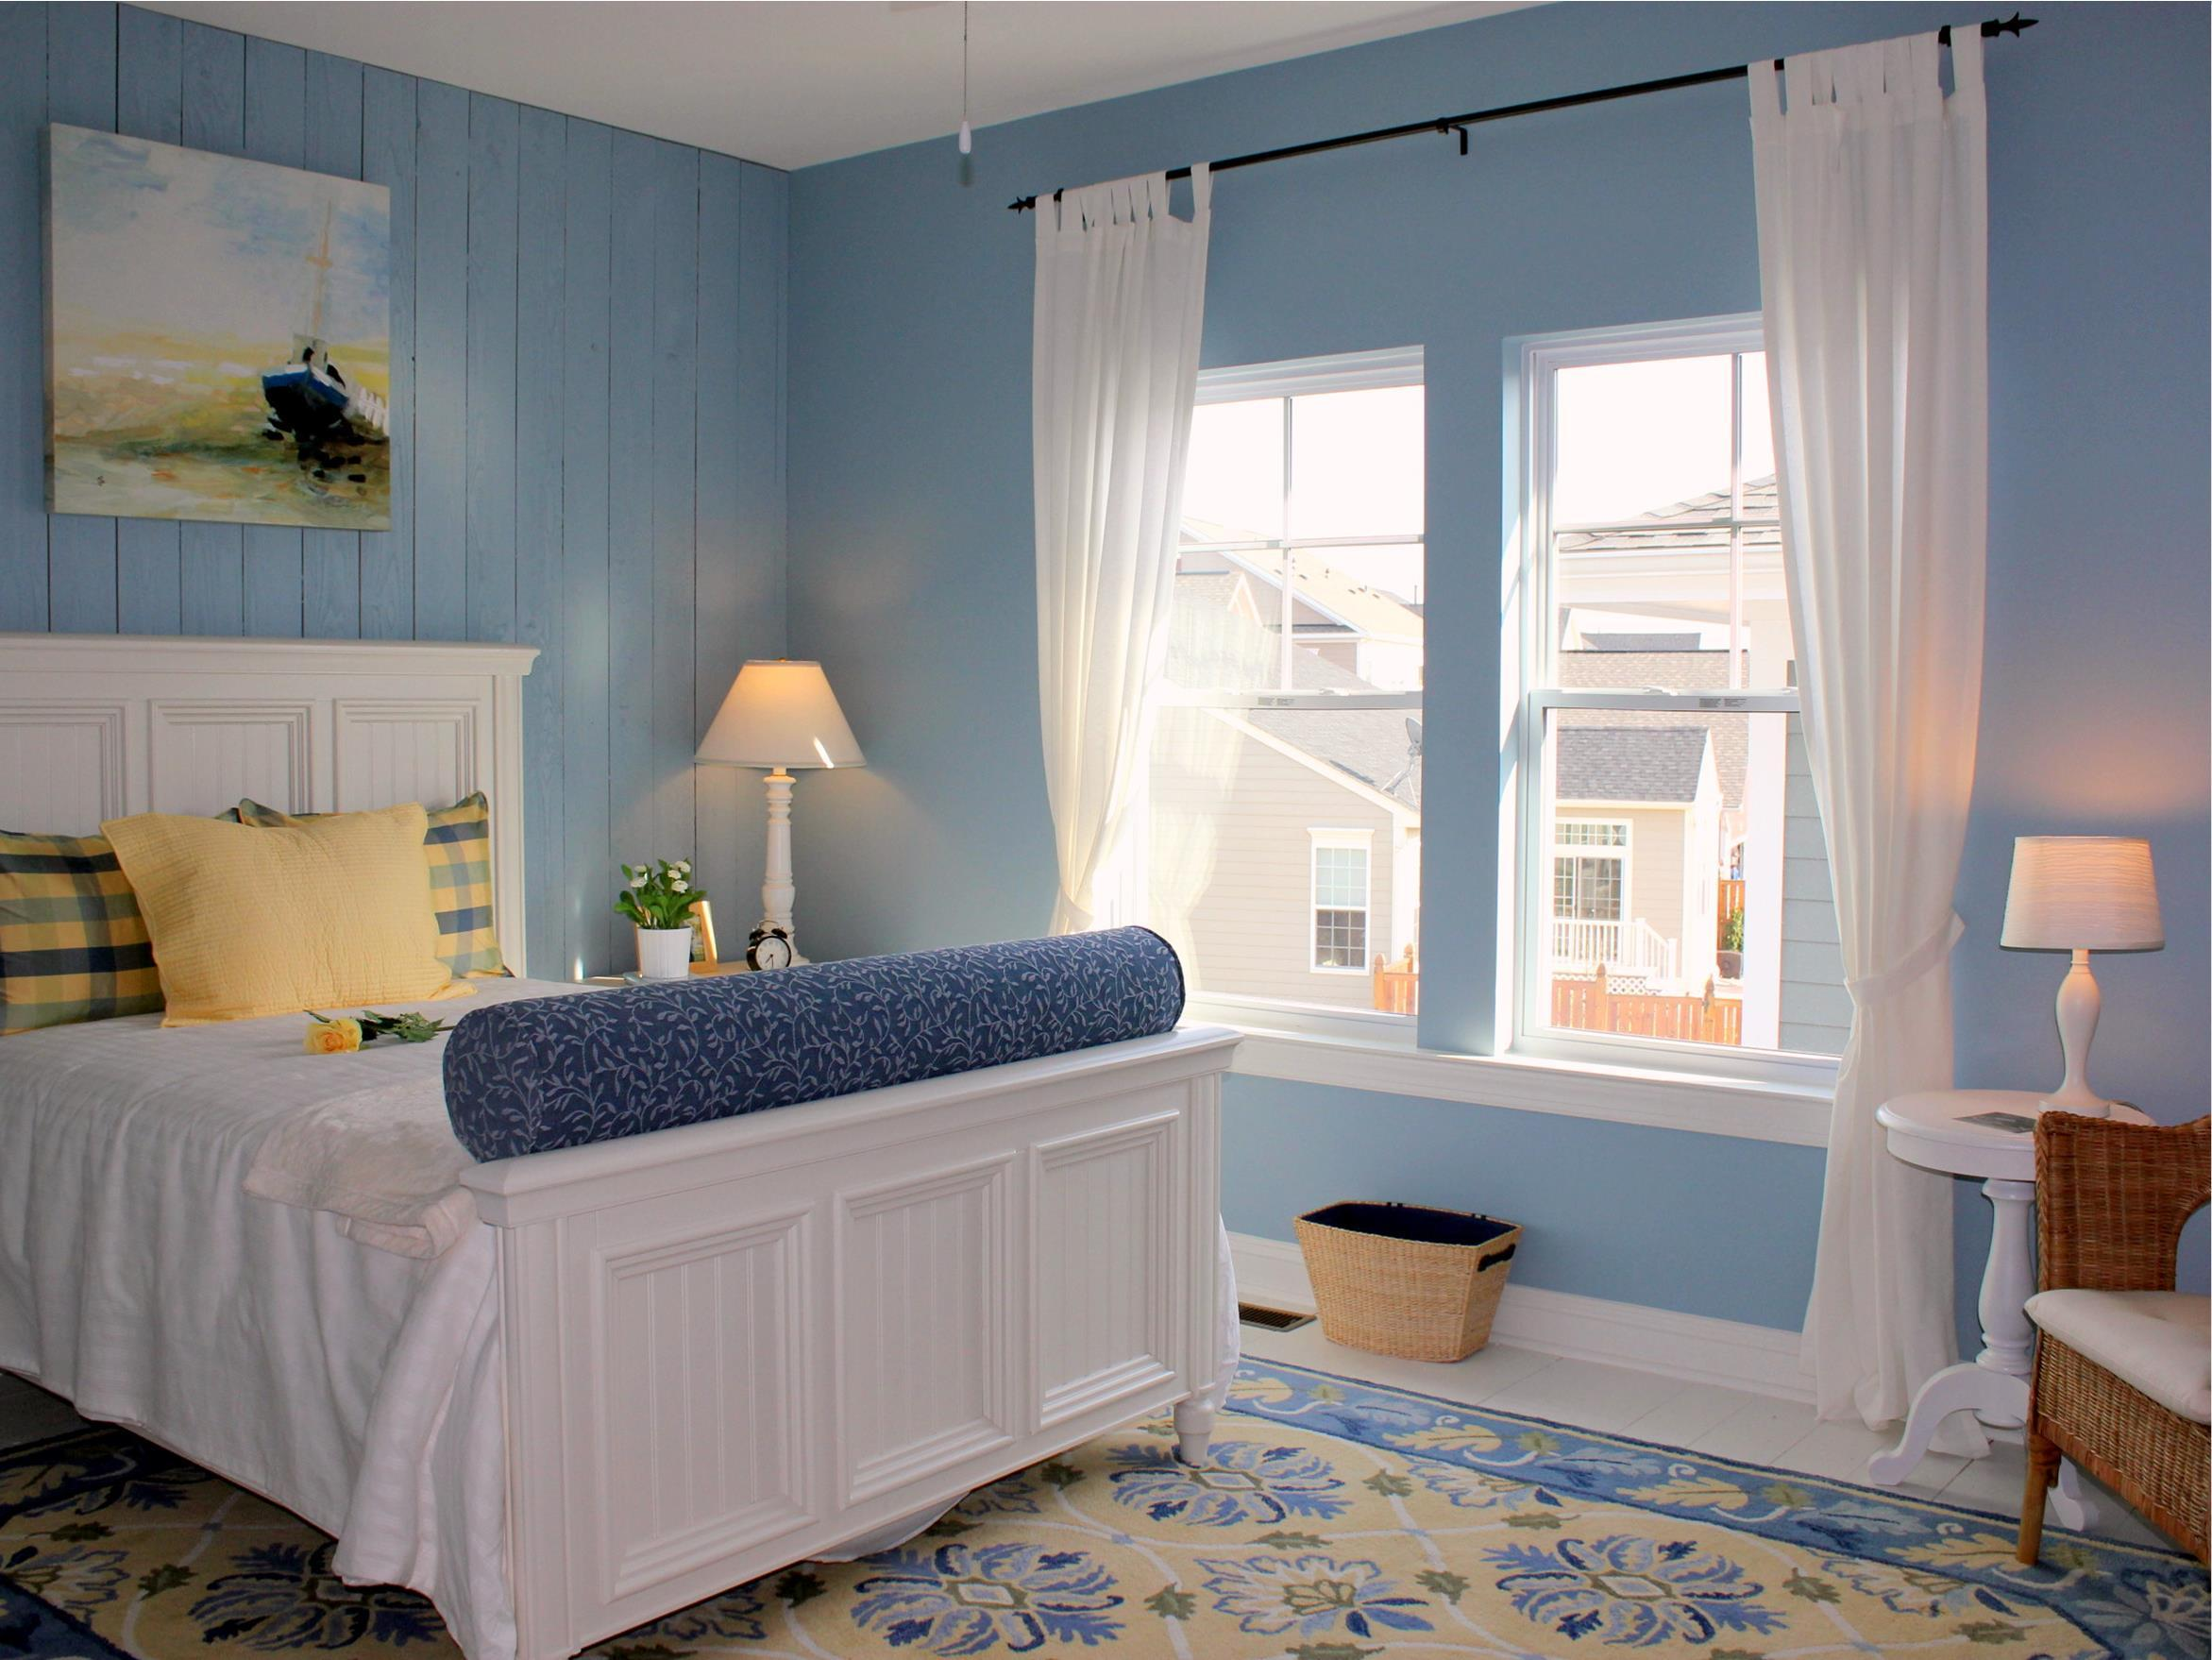 Bedroom featured in the Kitty Hawk Legacy By Covell Communities in Eastern Shore, MD